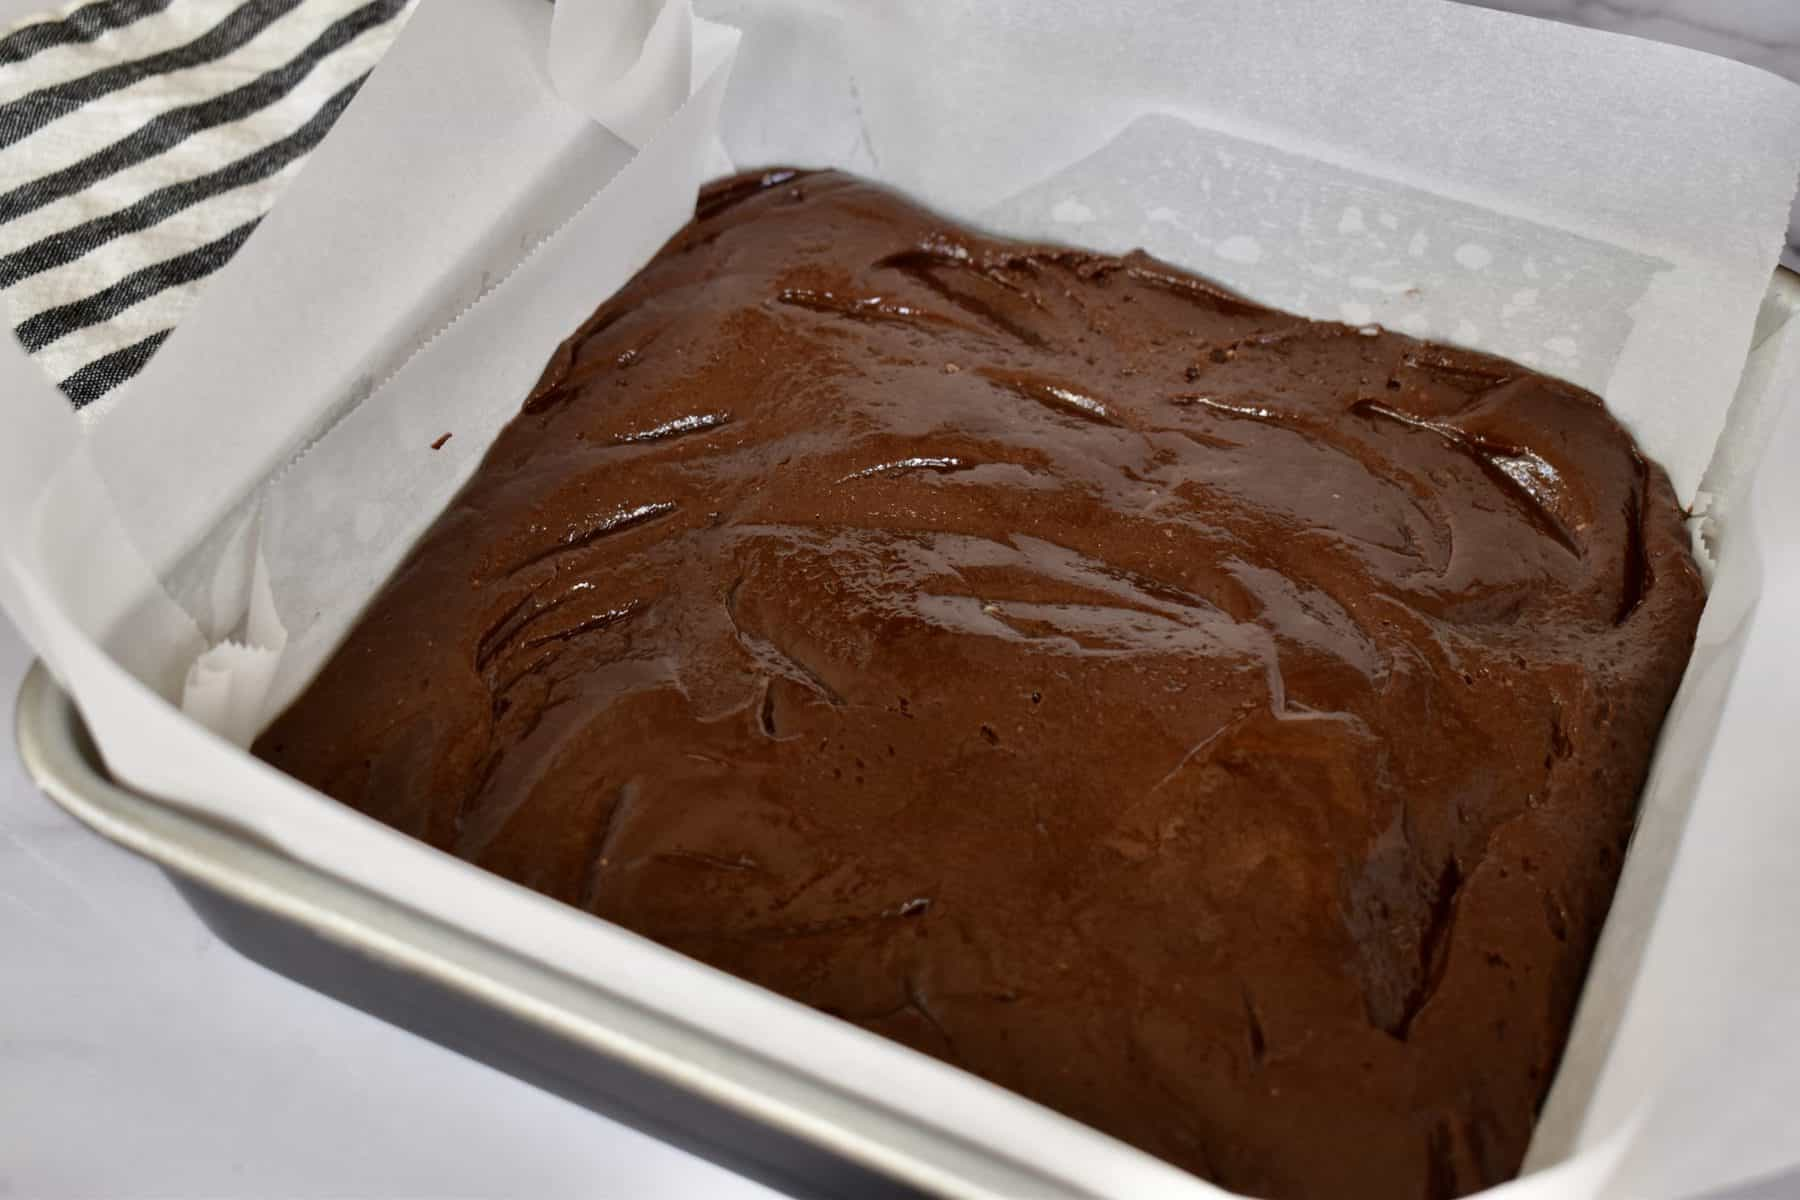 Brownie Batter in a lined baking pan.